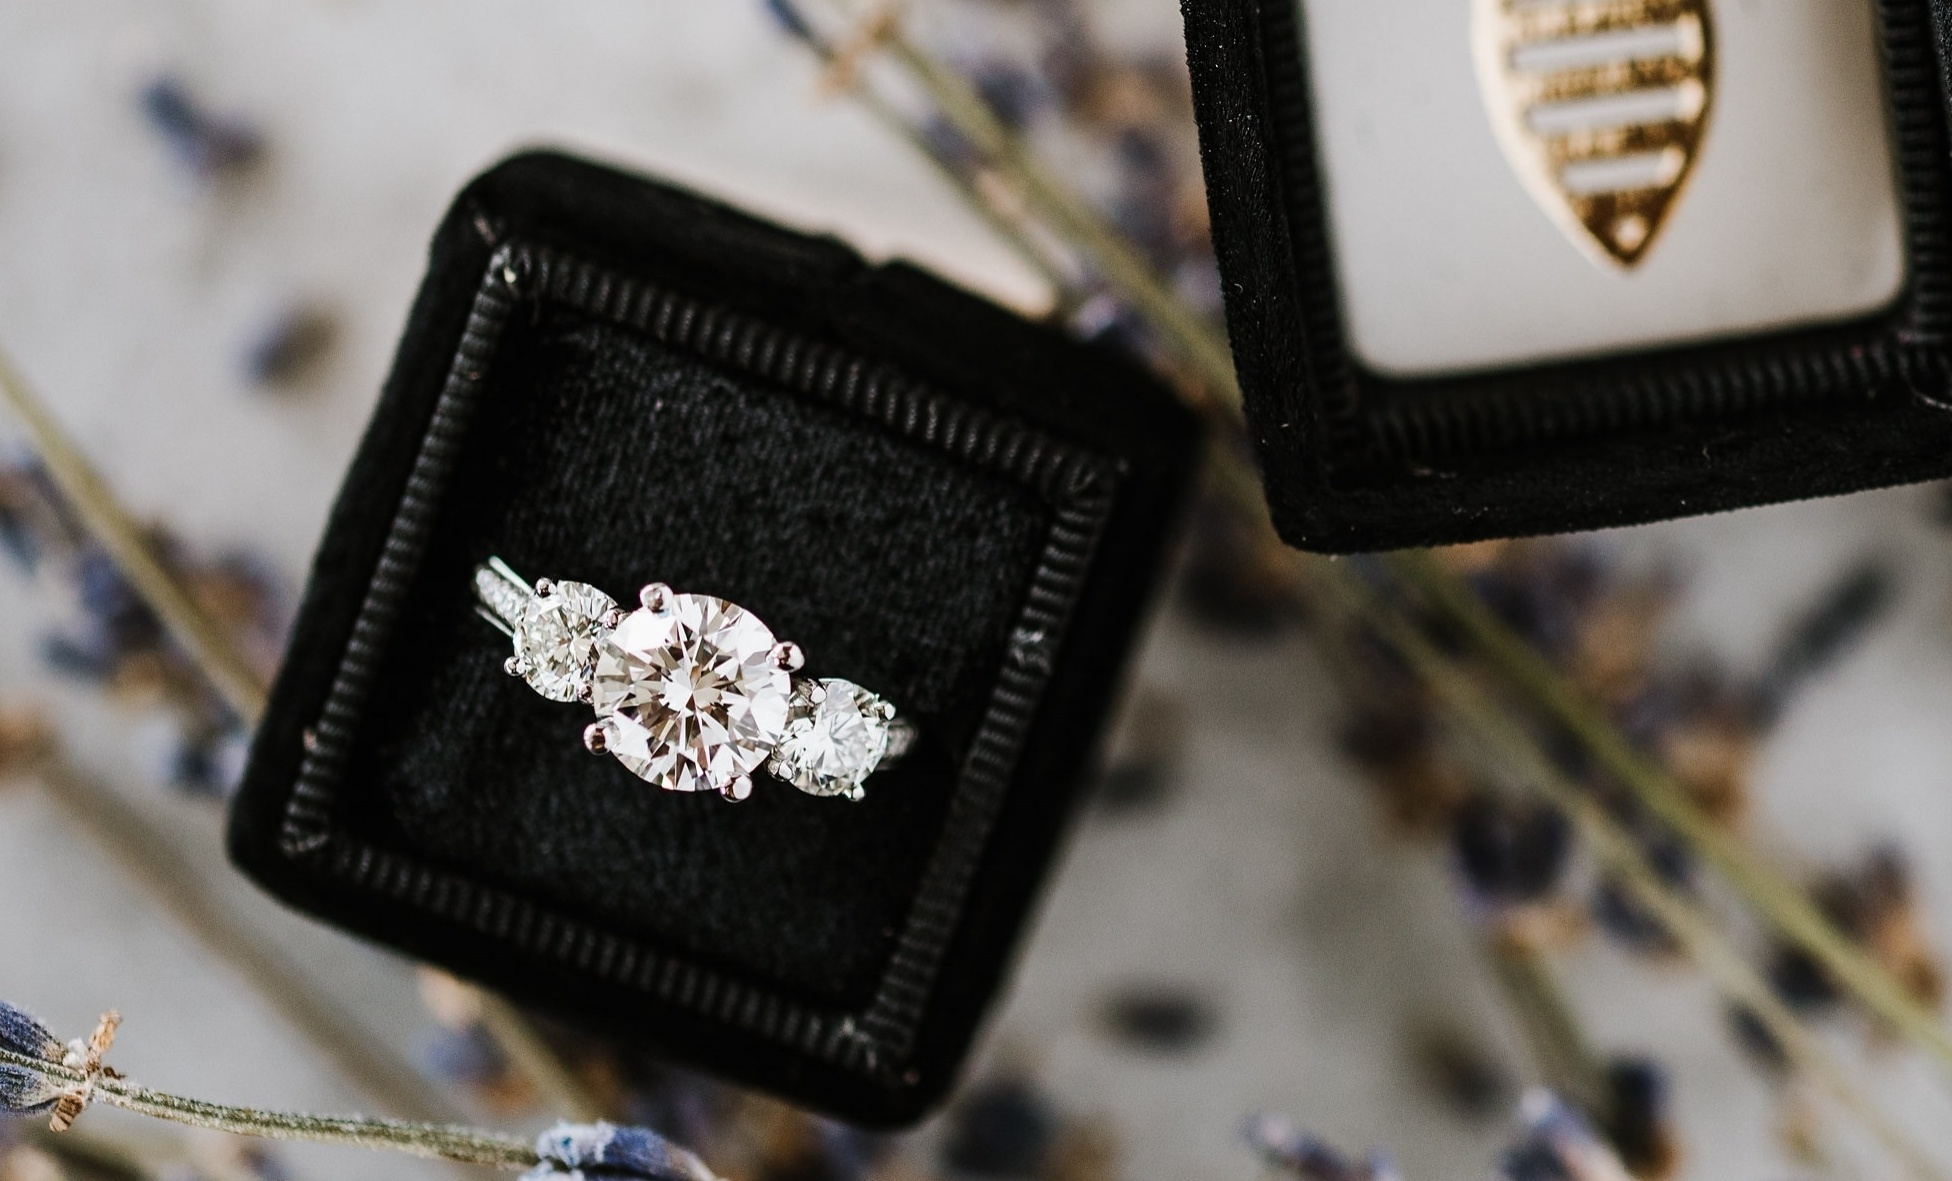 Make it a three-stone ring with smaller diamonds instead of one large solitaire diamond